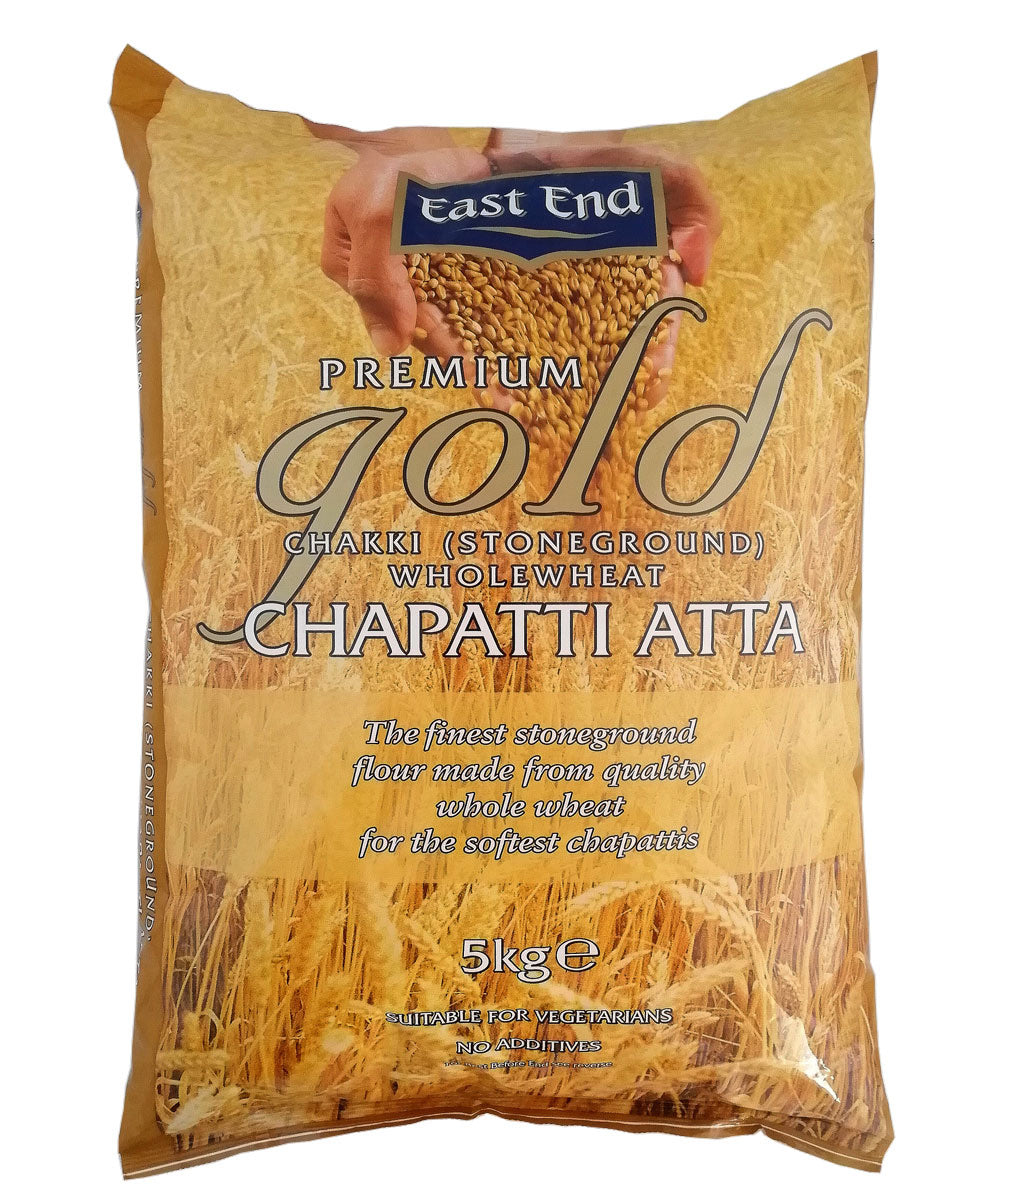 Premium Gold Chapatti Flour, East End (1.5kg)